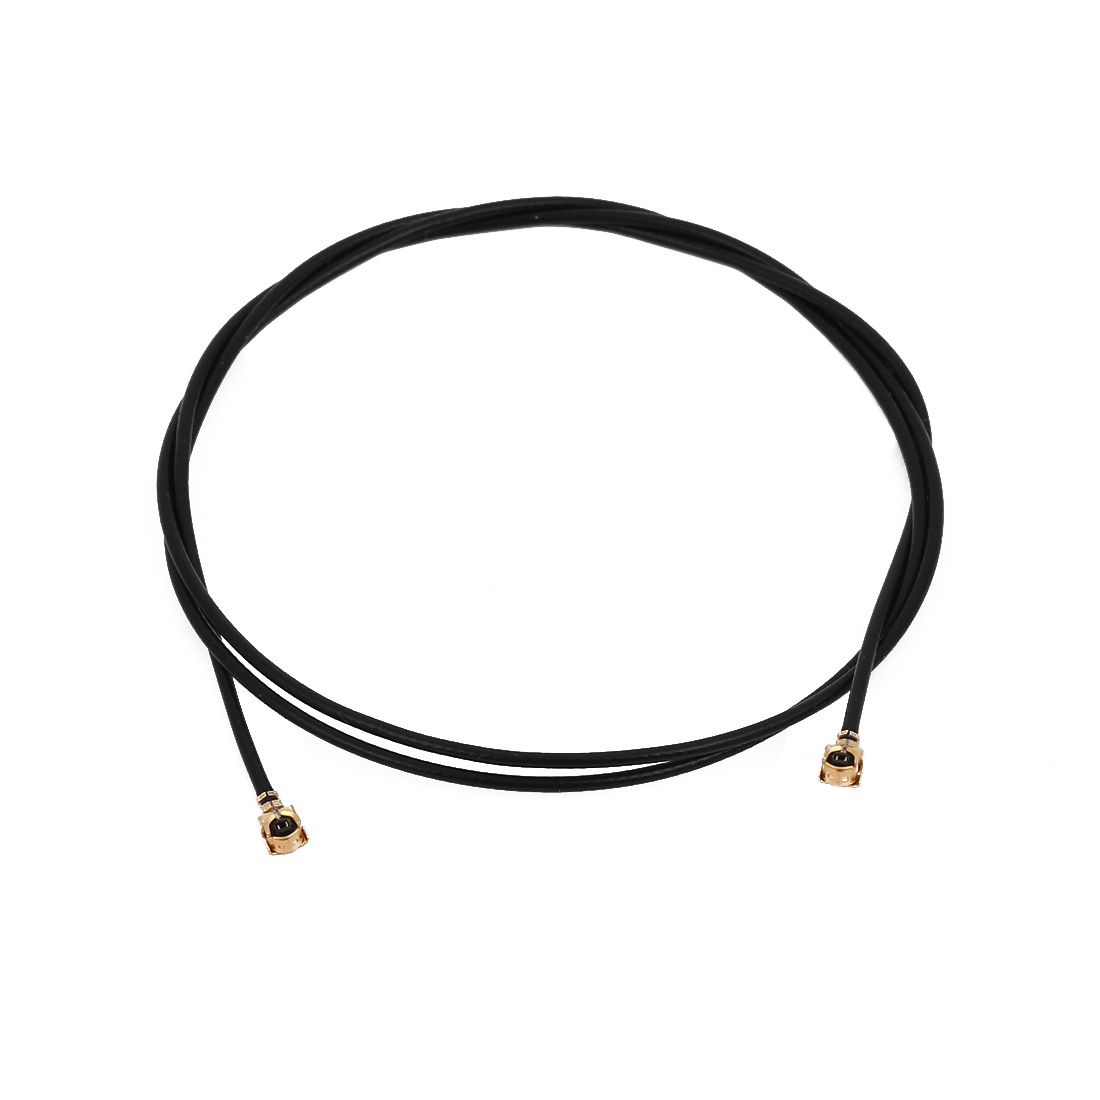 RF1.13 IPEX 1.0 to IPEX 1.0 Antenna WiFi Pigtail Cable 50cm Length for Router